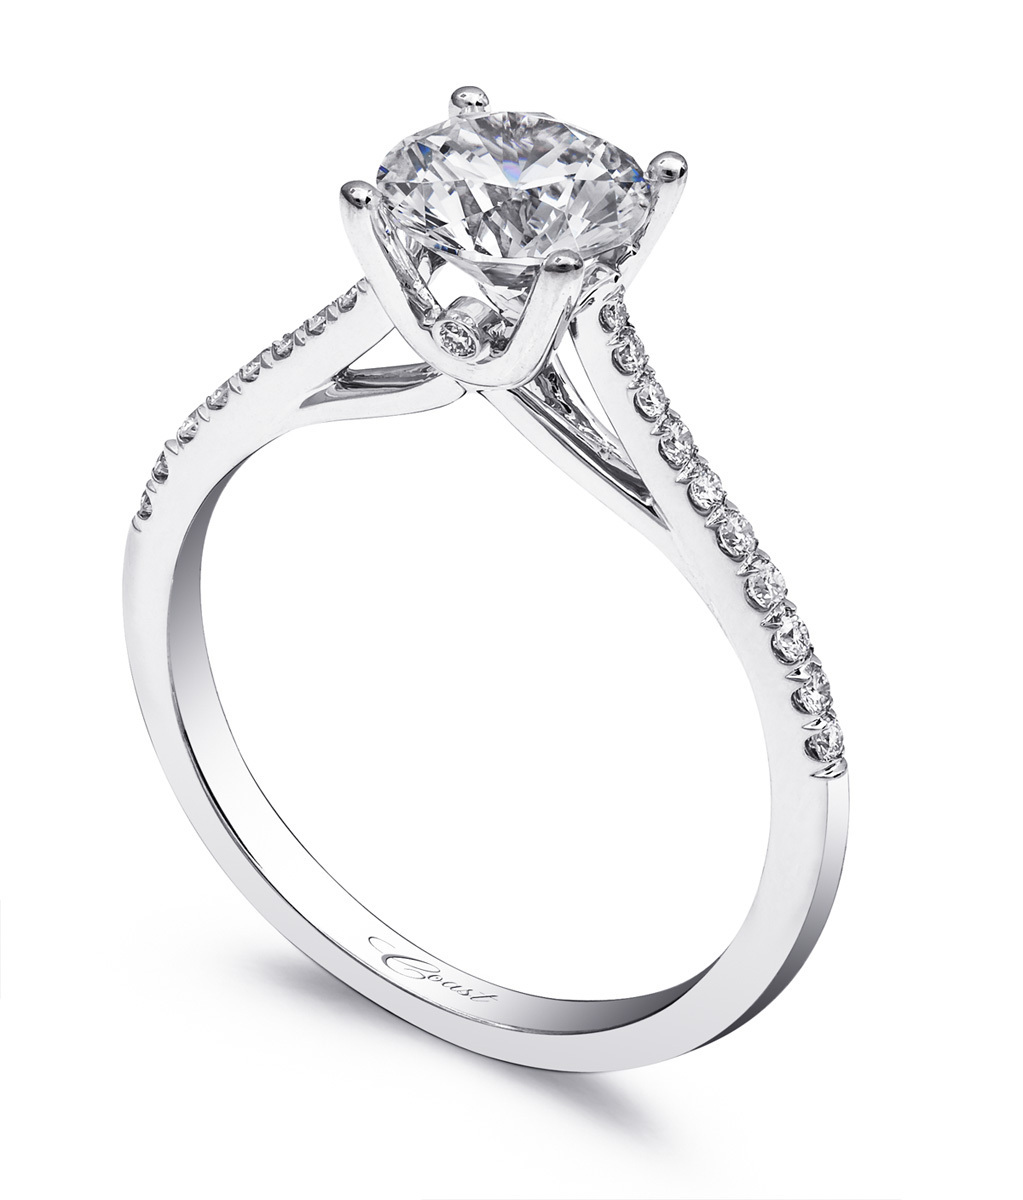 Charisma Engagement Ring - Classic, Petite Diamonds